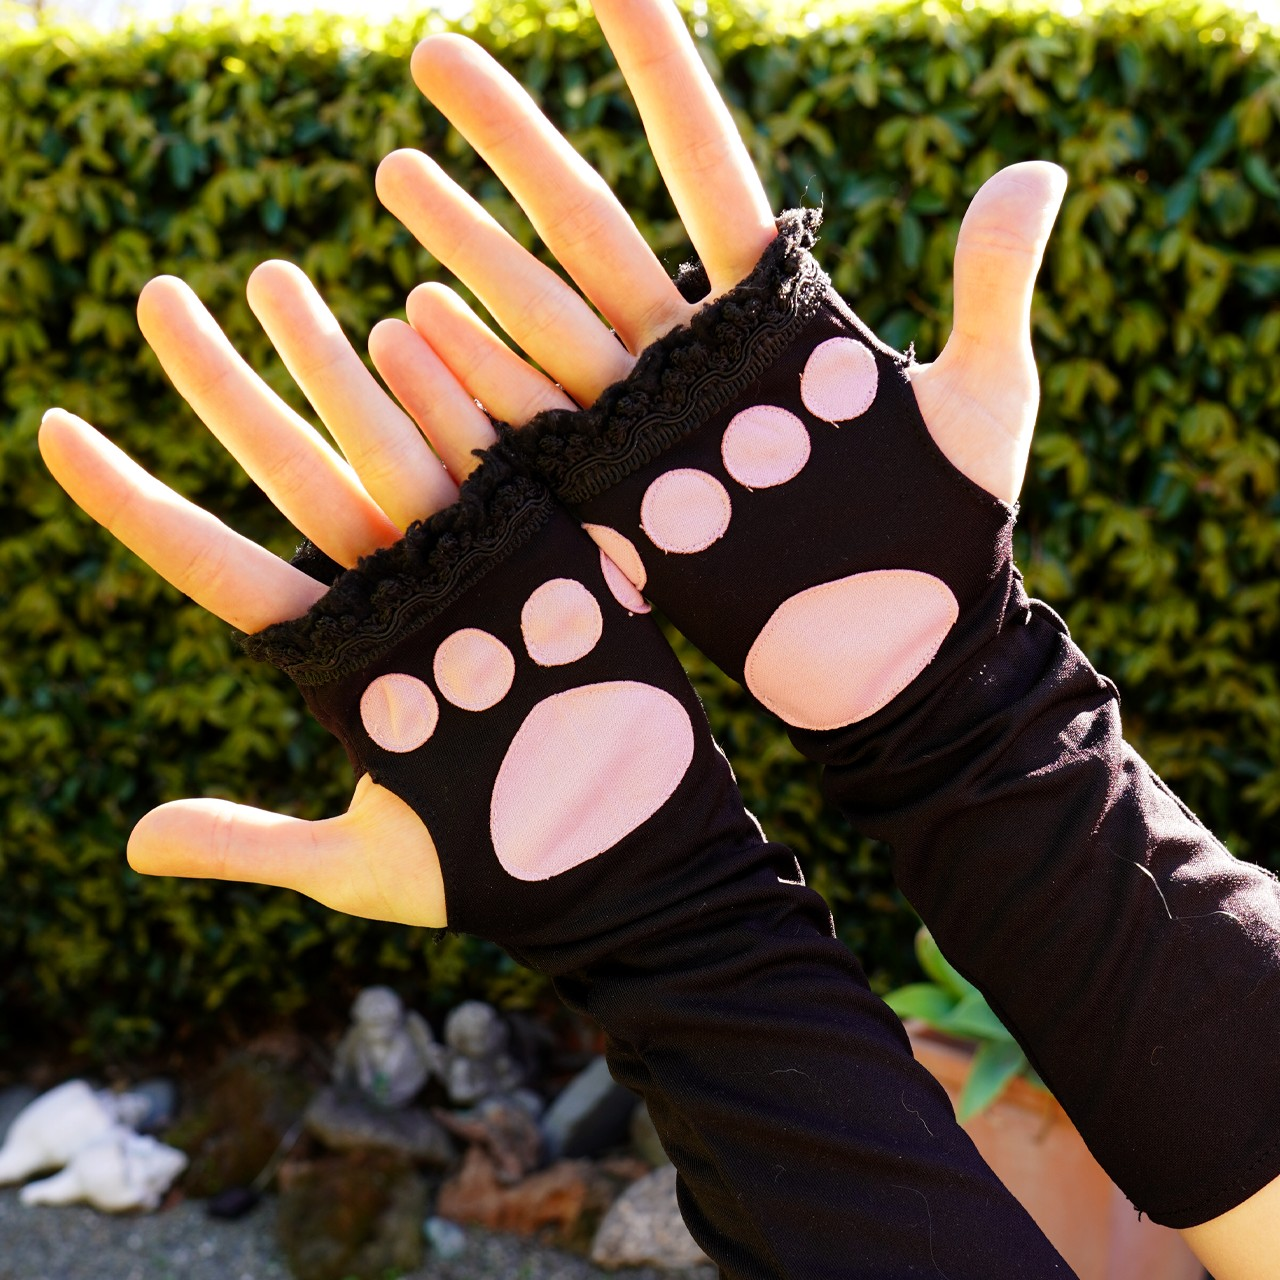 Product Image 1 - Meow... Or Woof! These wrist